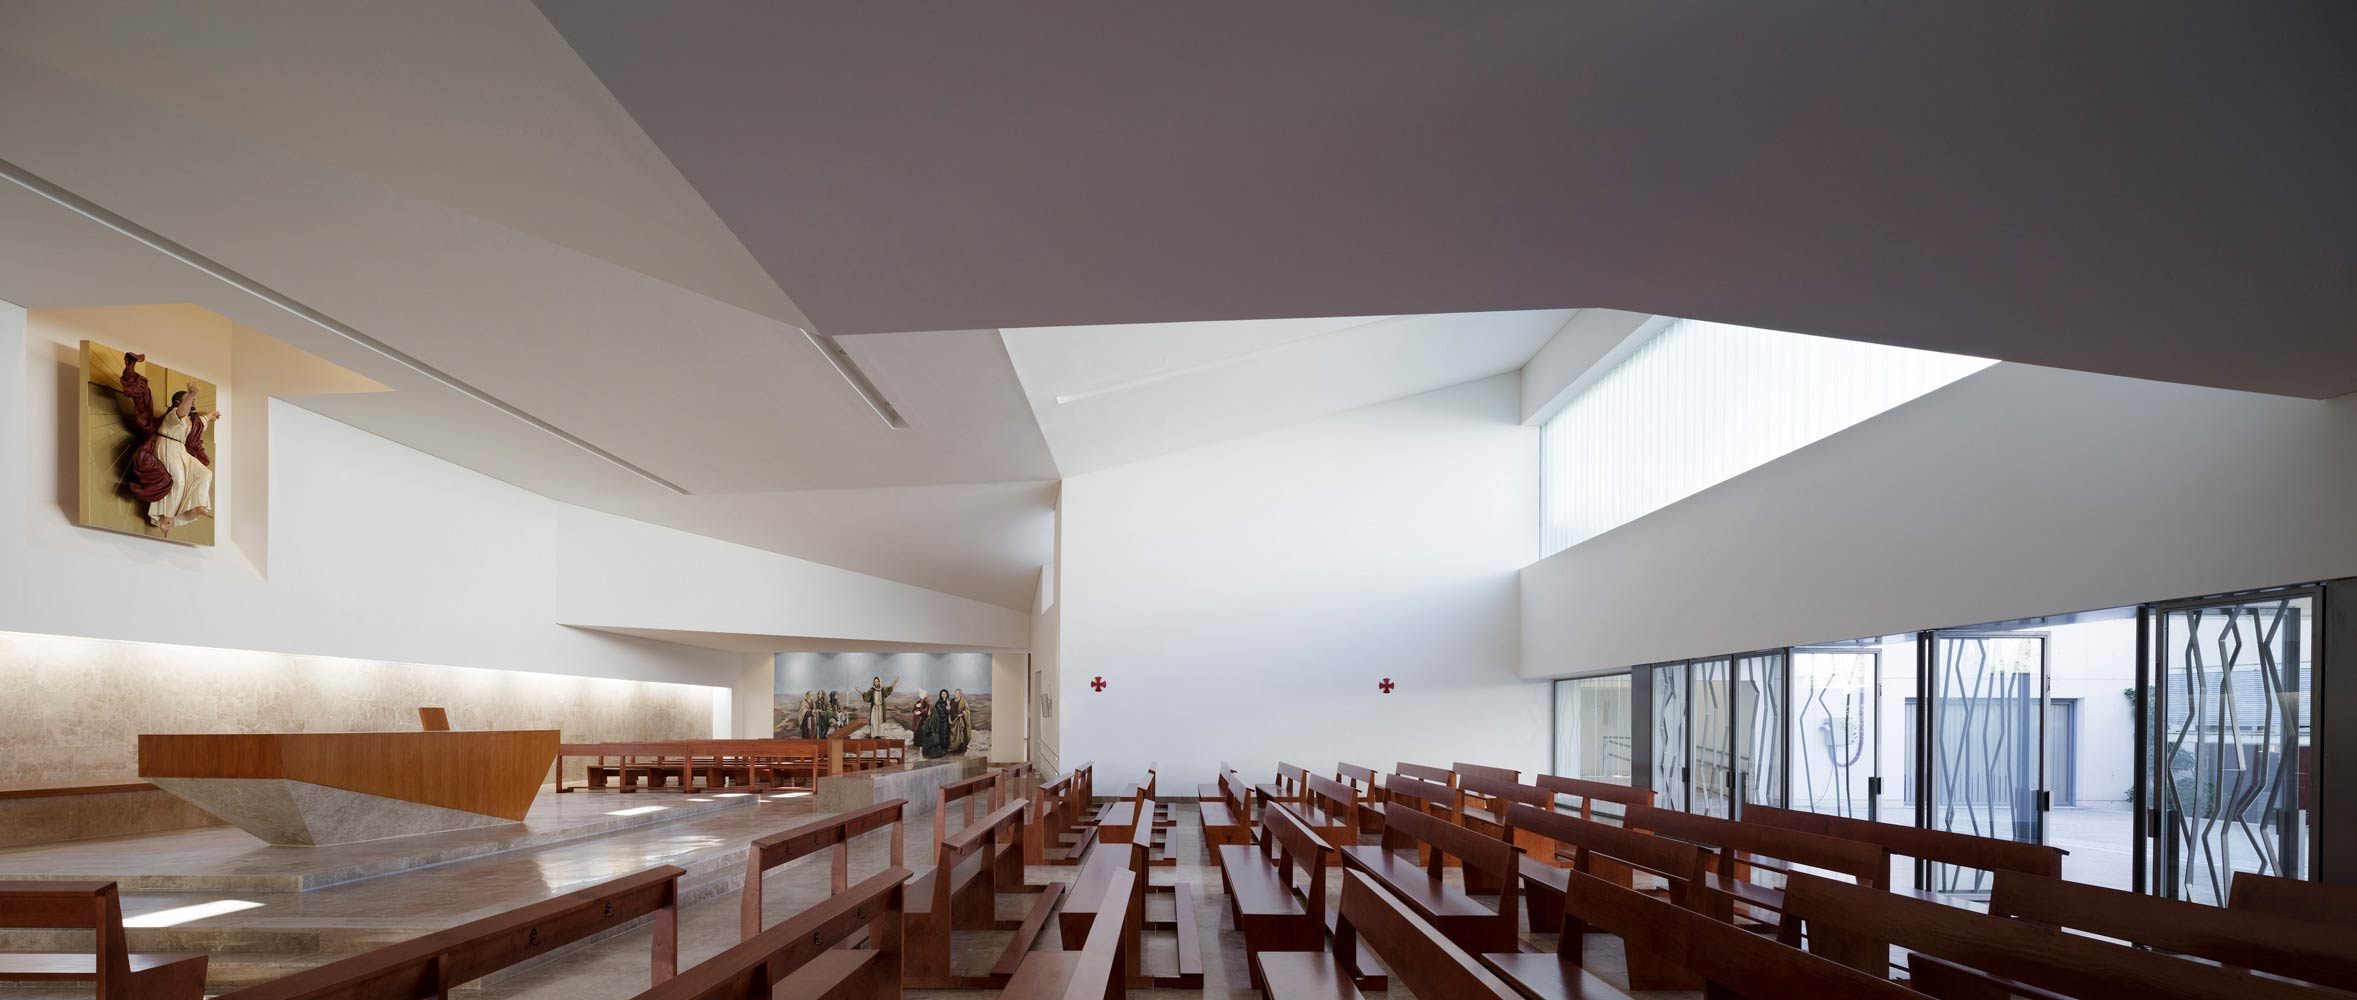 La Ascensión del Señor Church / AGi architects